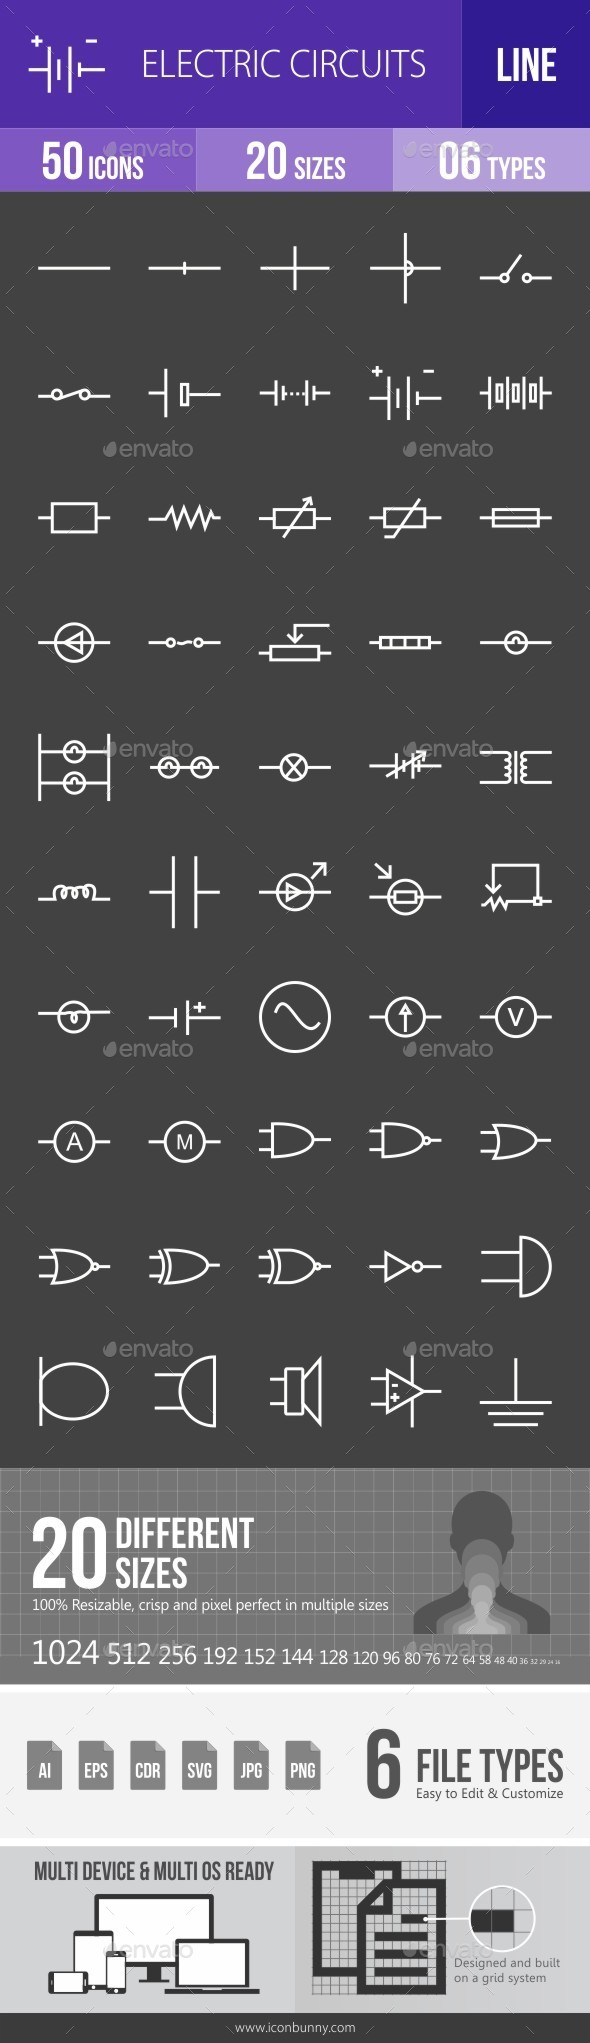 Electric Circuits Line Inverted Icons - Icons